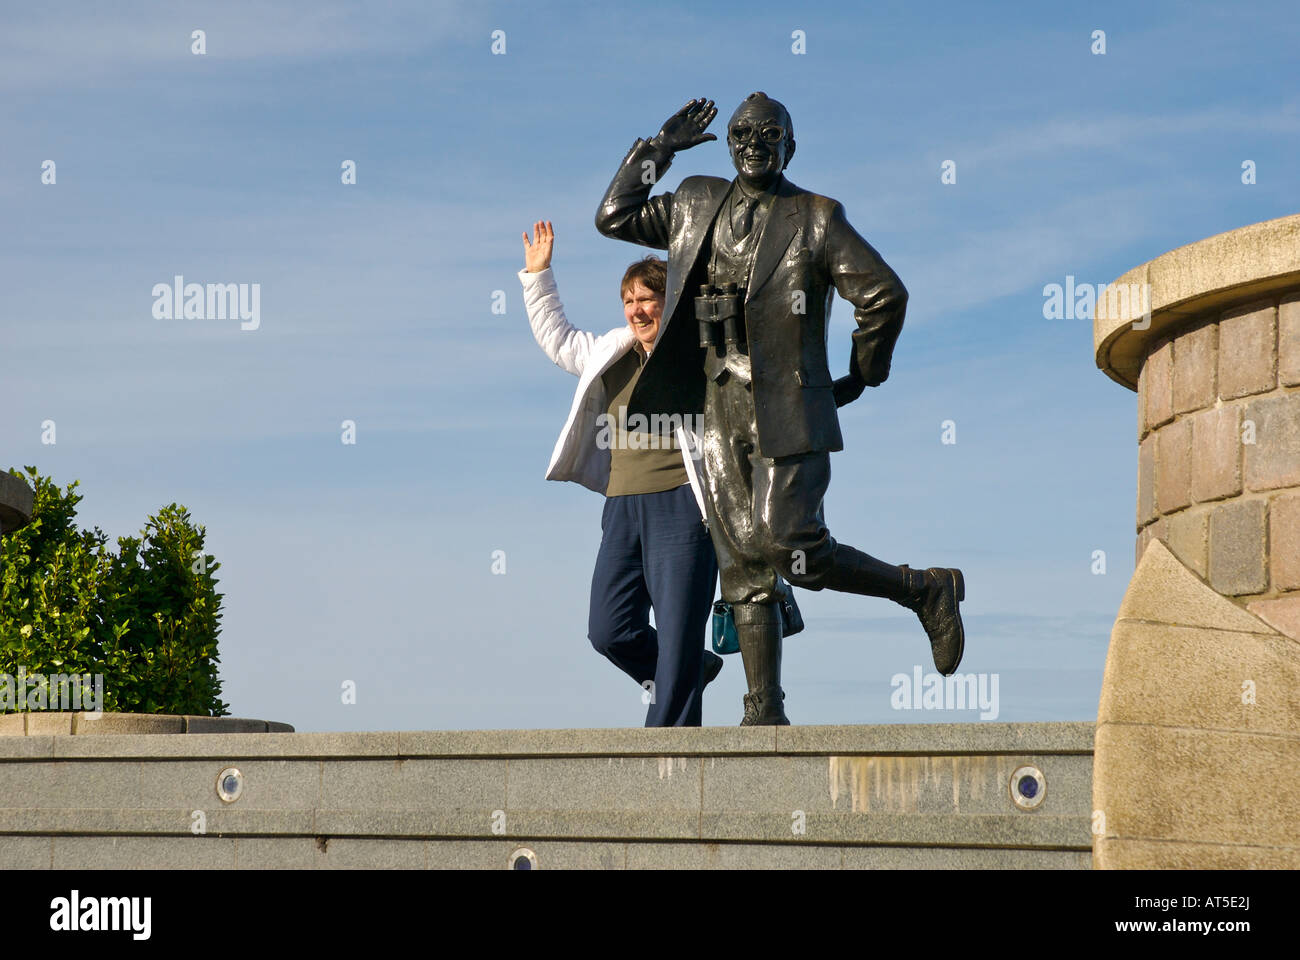 Statue of comedian Eric Morecambe on the promenade at Morecambe, Lancashire, England UK Stock Photo